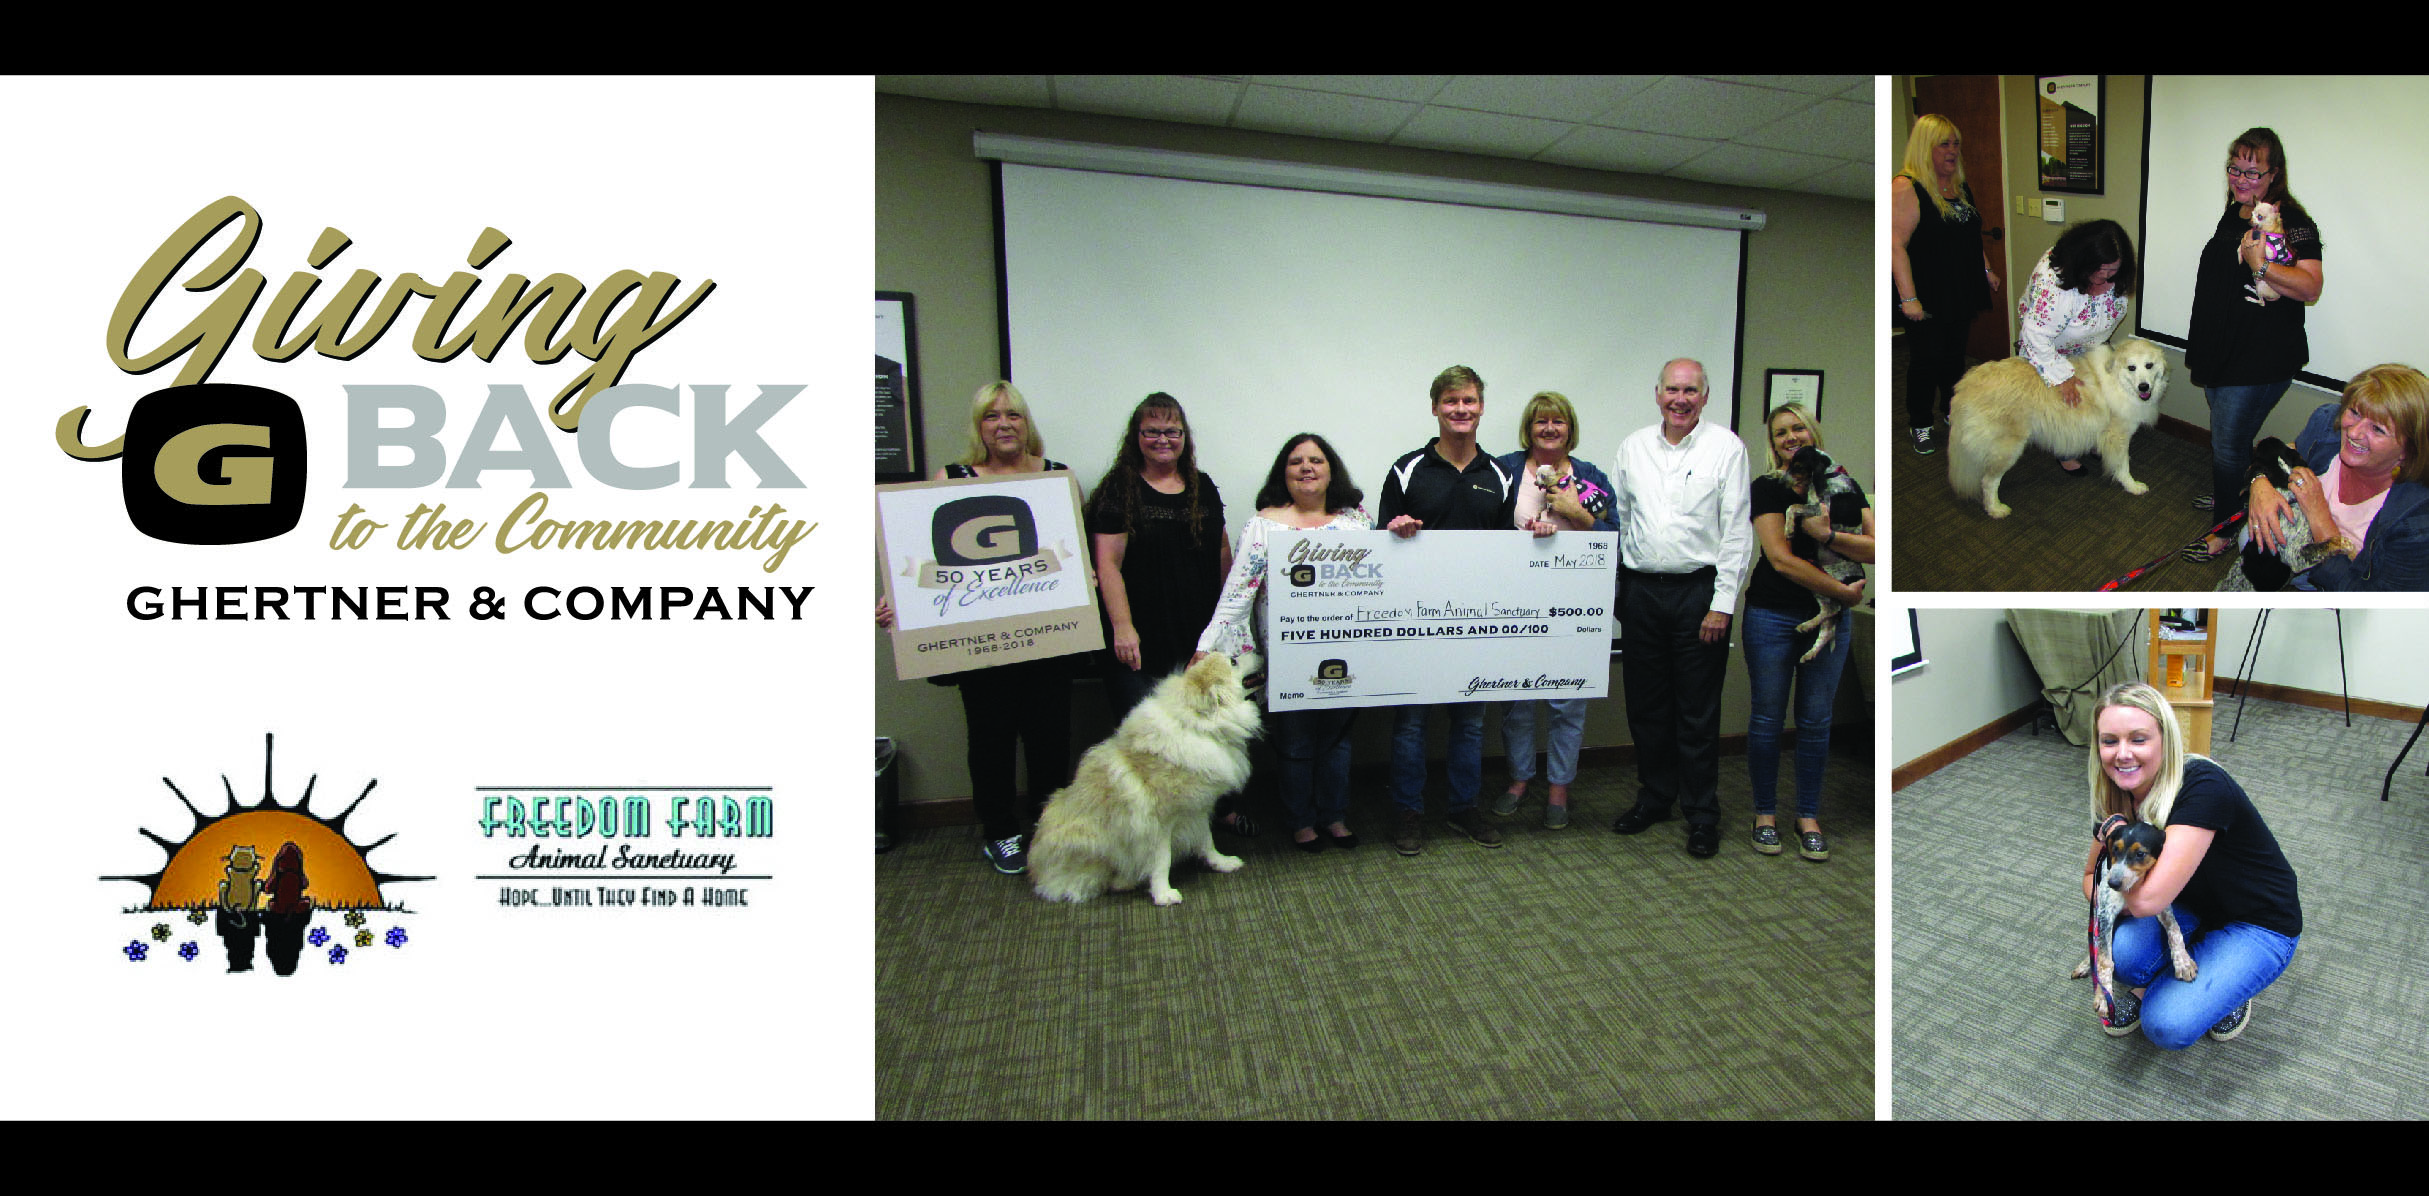 Receiving the check on behalf of the Freedom Farm Animal Sanctuary is   Kim Patton (second from the left)   from Scott Ghertner, Co-President of Ghertner & Company. Other Ghertner & Company associates in attendance were Jaye Kloss, Stephanie Gray, Janine Mathews, Henry Puckett and Danielle Hayes.